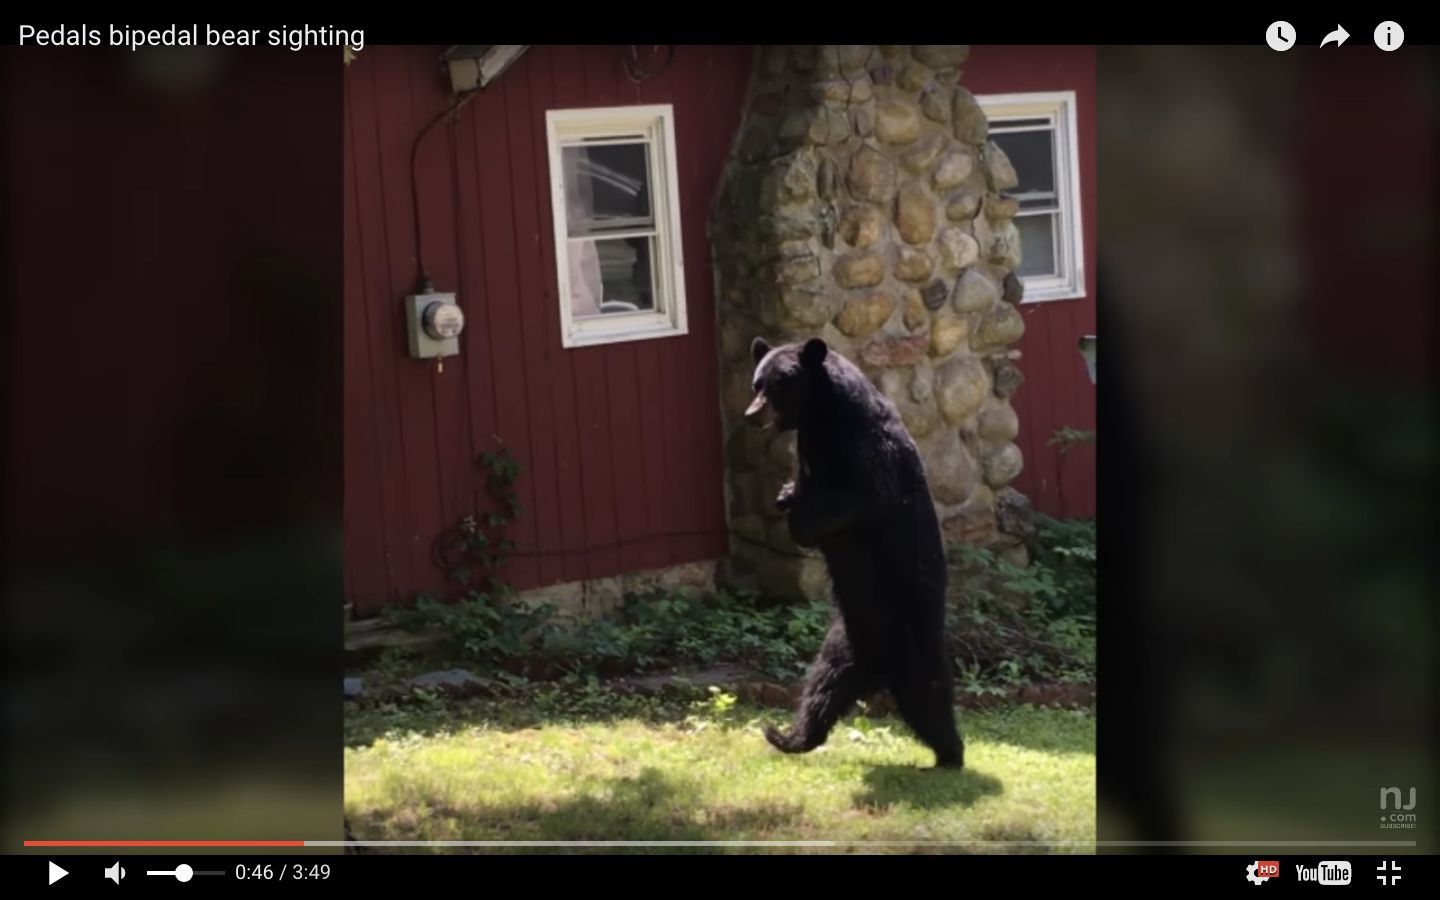 Pedals the bear was seen strolling around a New Jersey neighborhood back in June